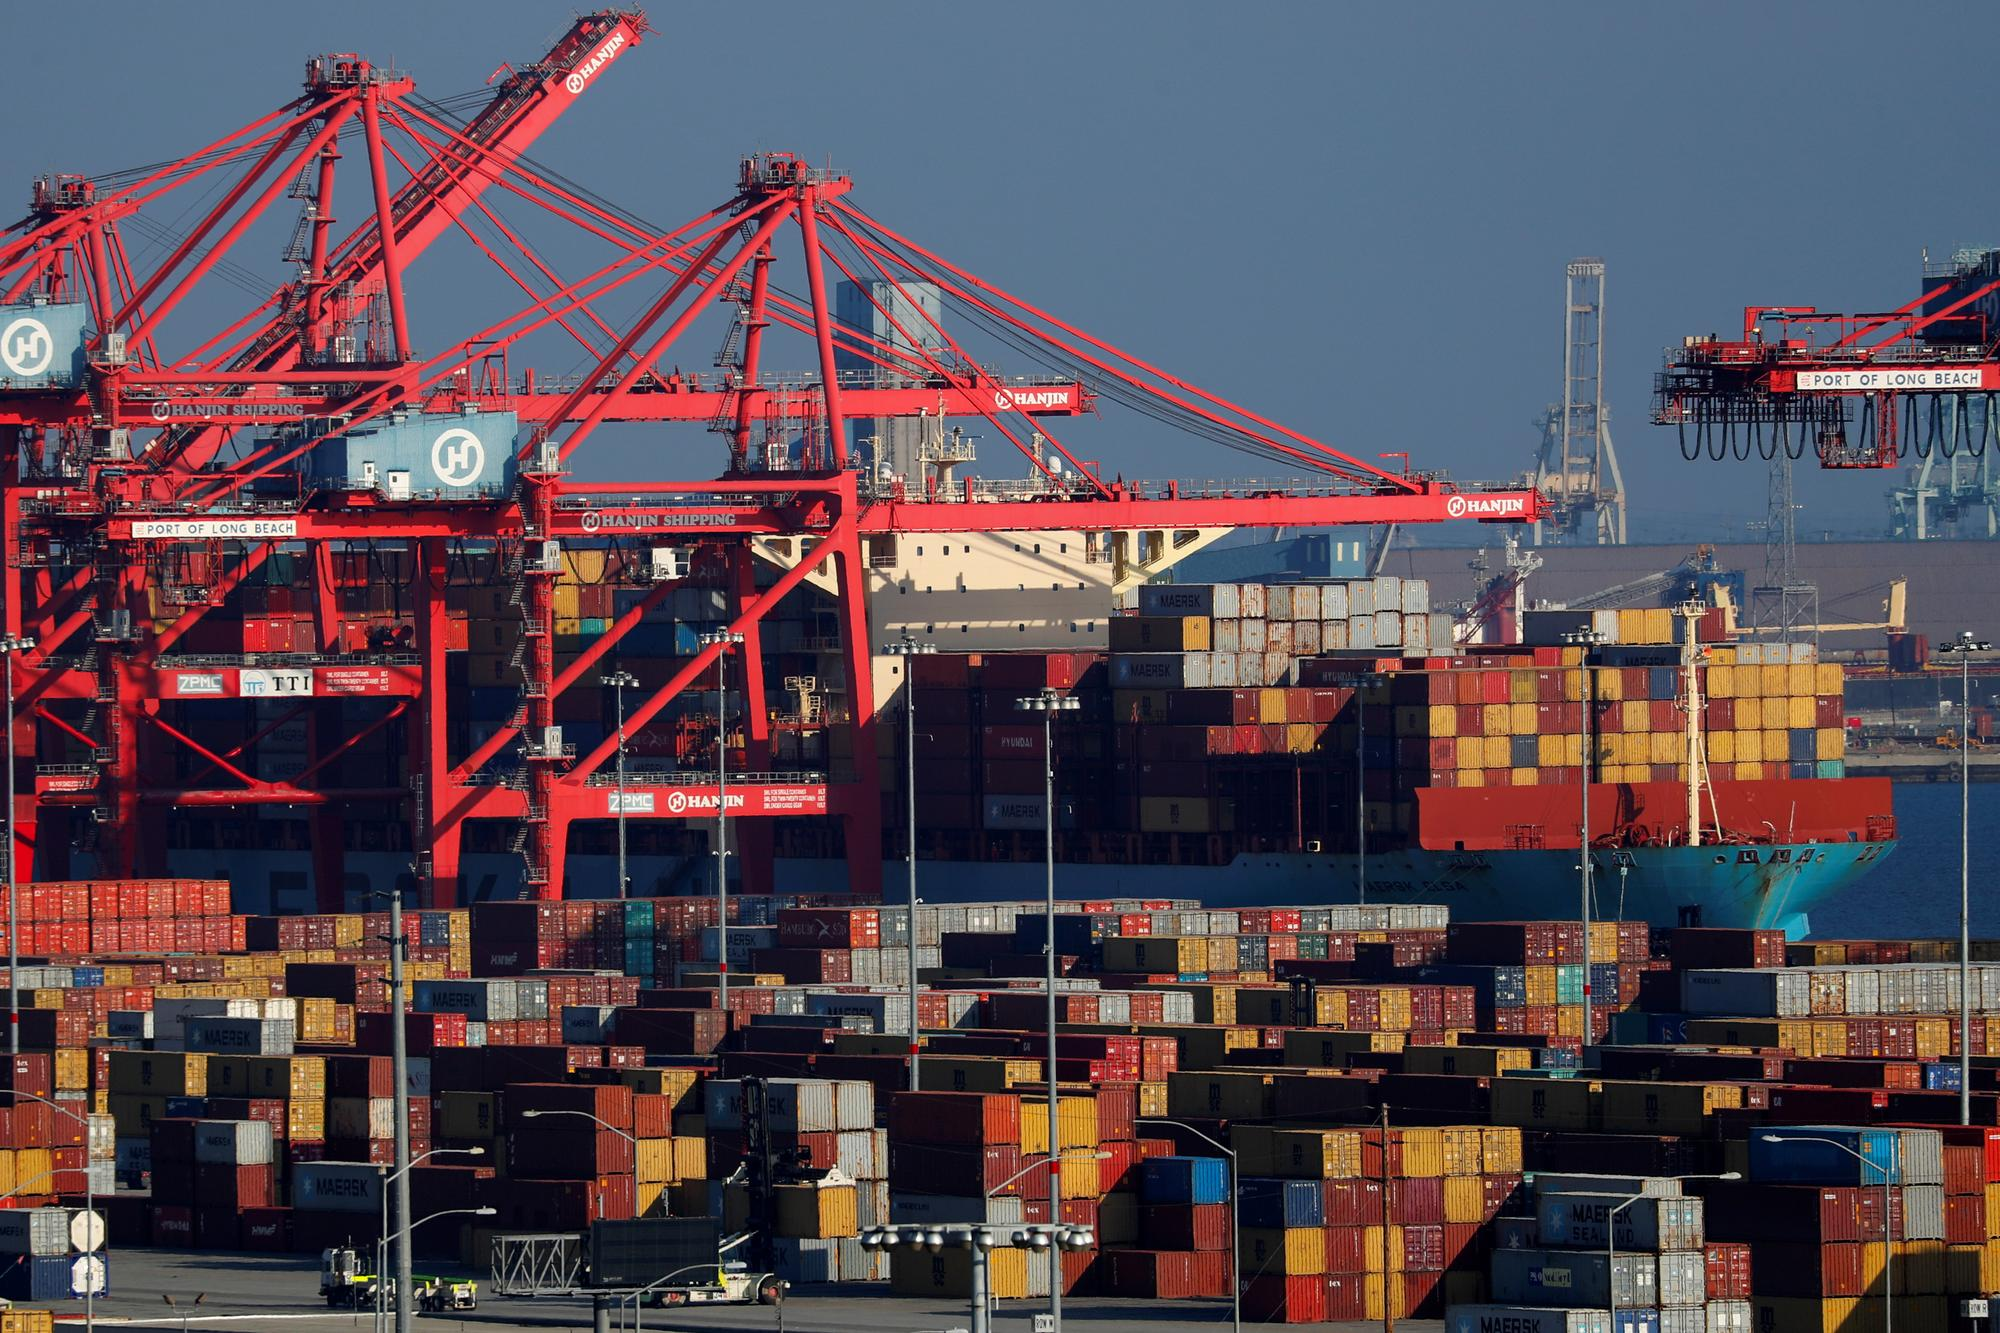 U.S. trade, services industry data point to slowing economy